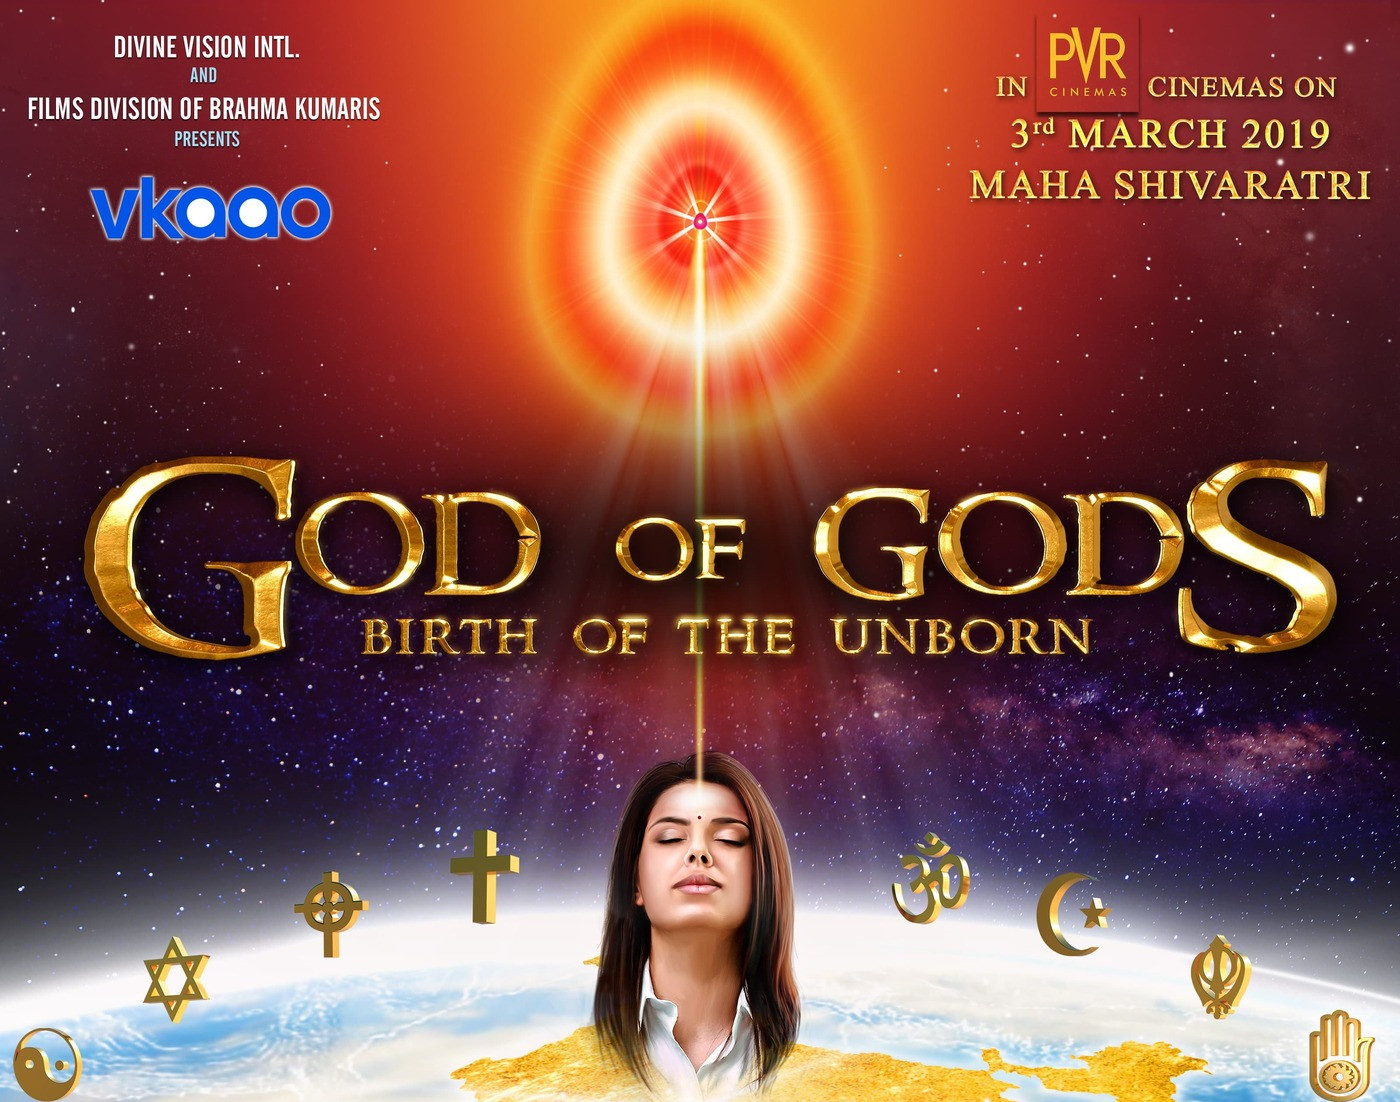 GOD OF GODS the movie, March 2019